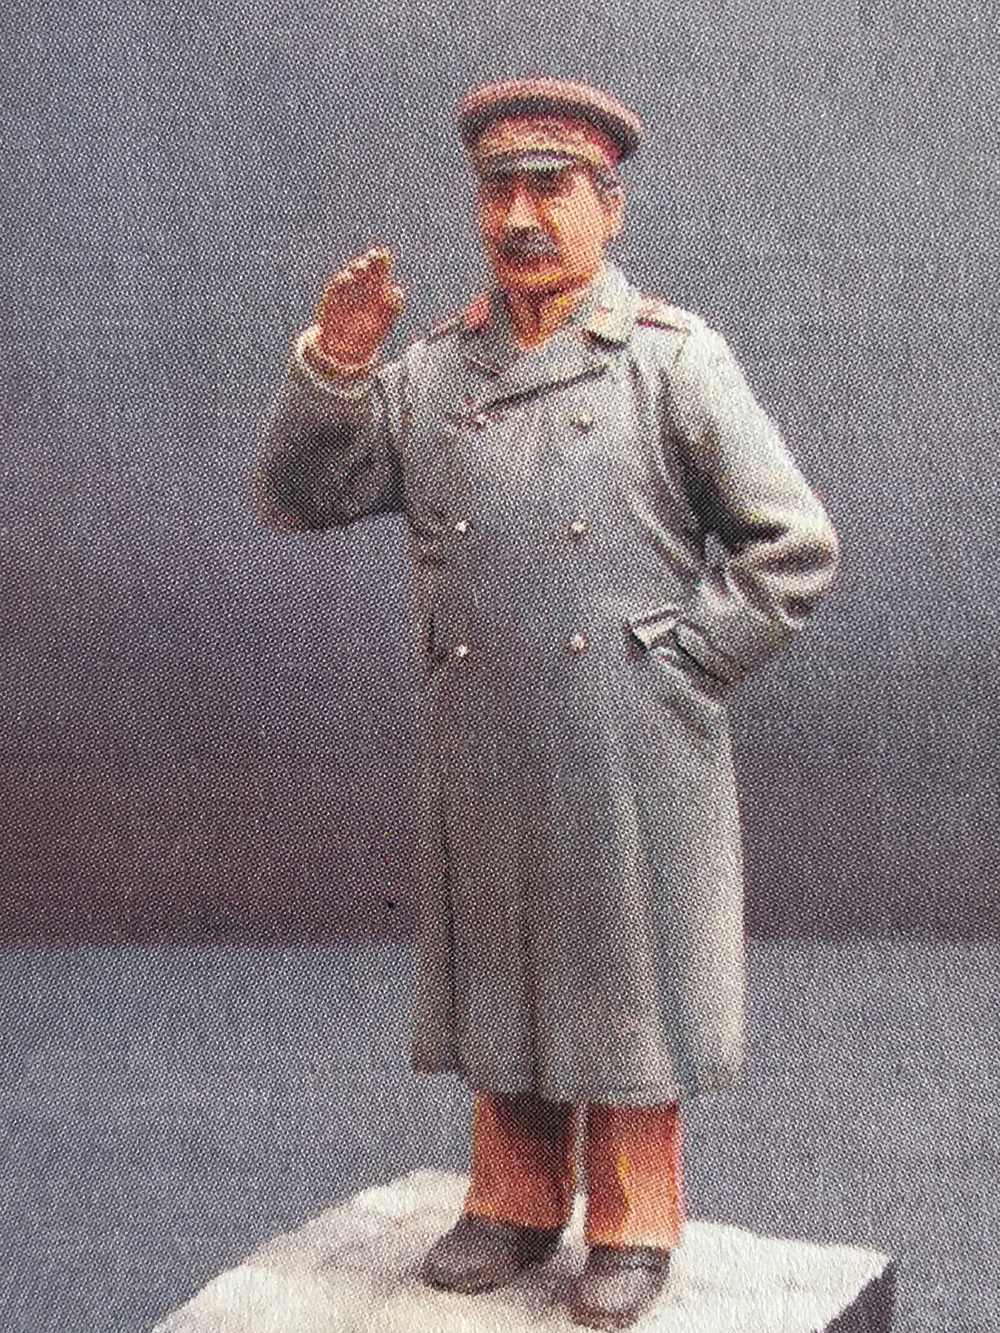 Assembly  Unpainted  Scale 1/35 The Soviet Stalin  Soldier Figure Historical  Resin Model Miniature Kit